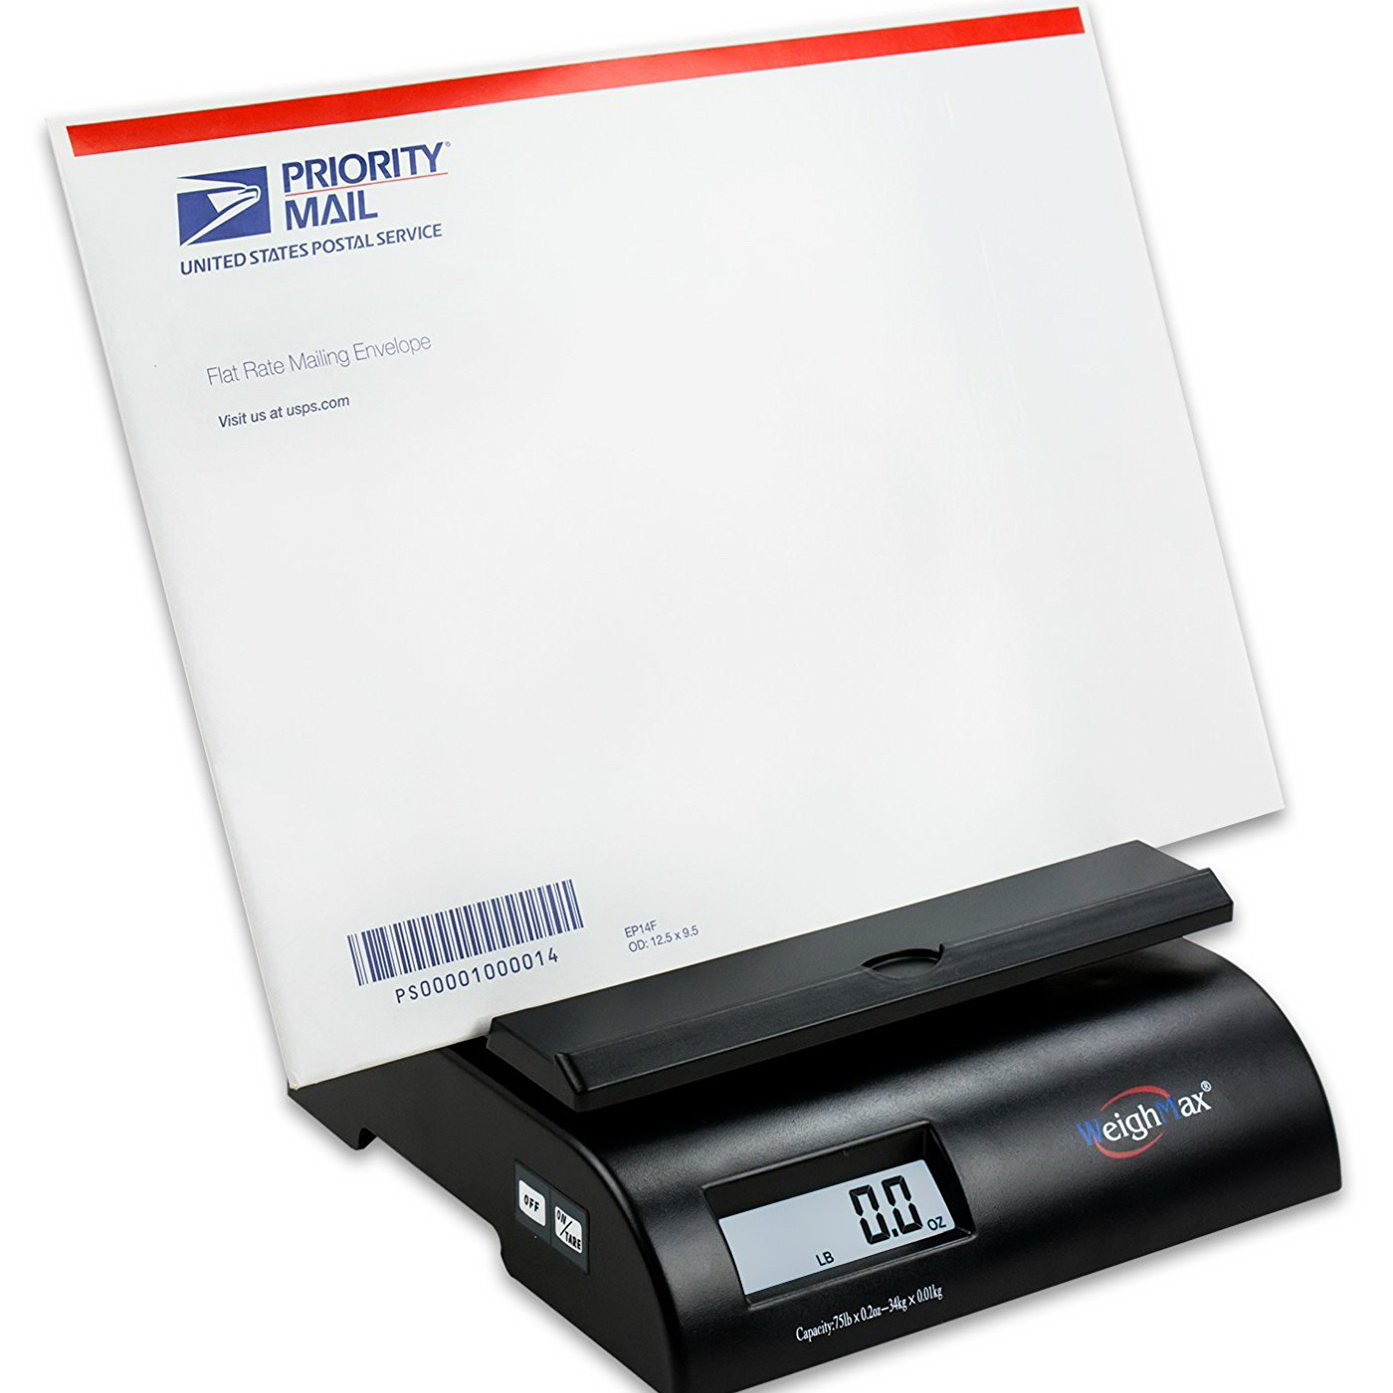 Weighmax Postal Shipping Scale